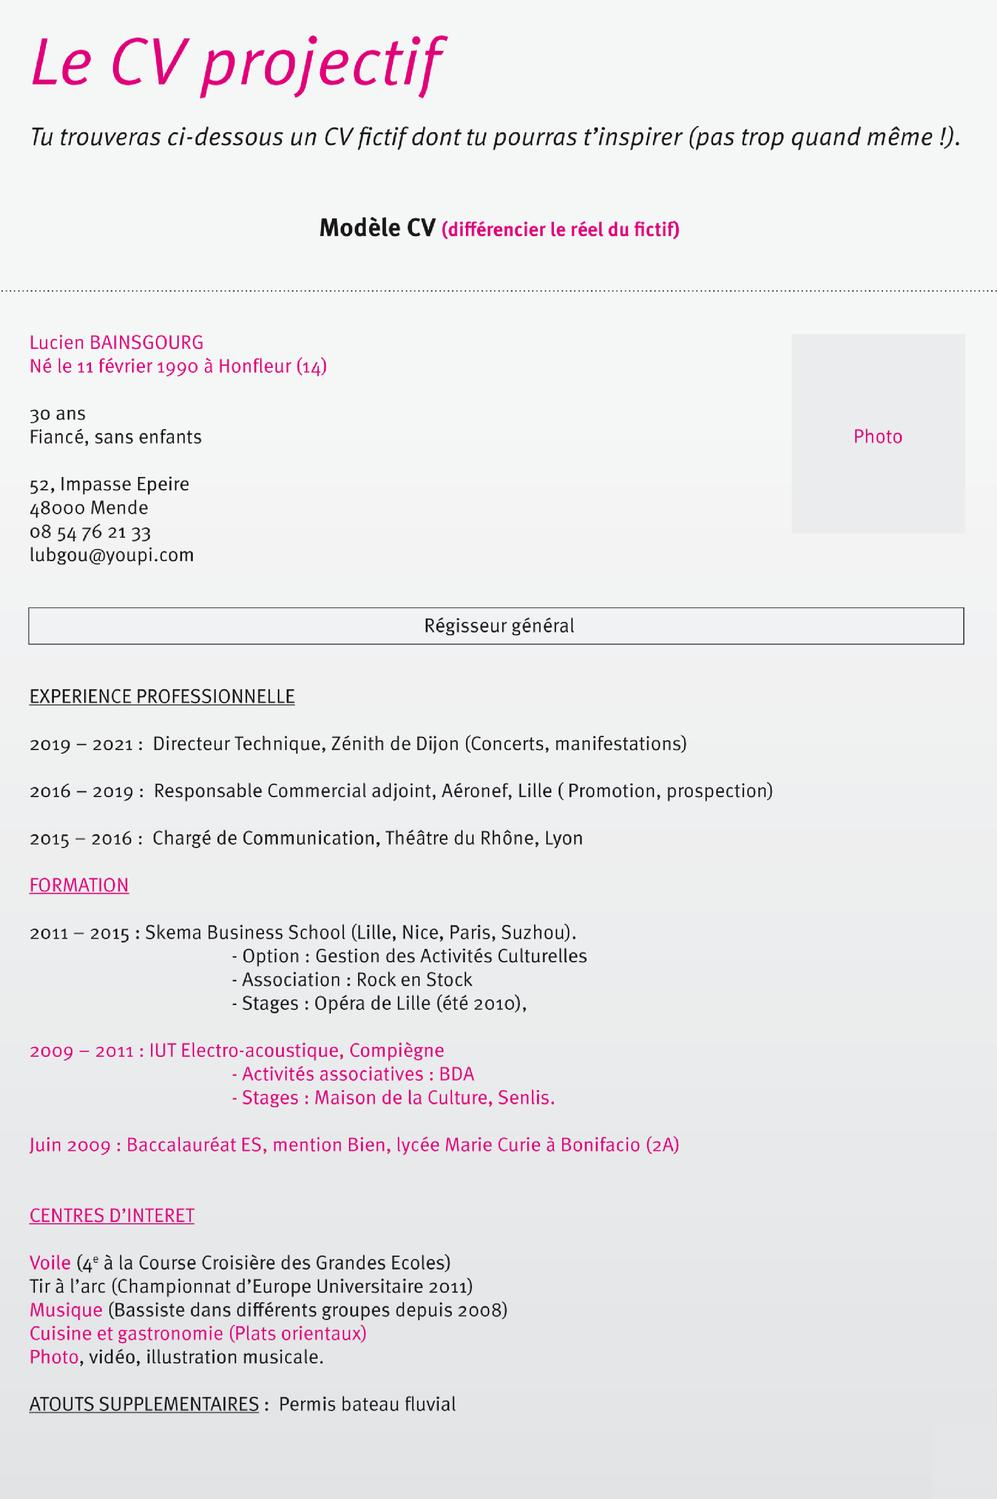 modele cv pages ipad